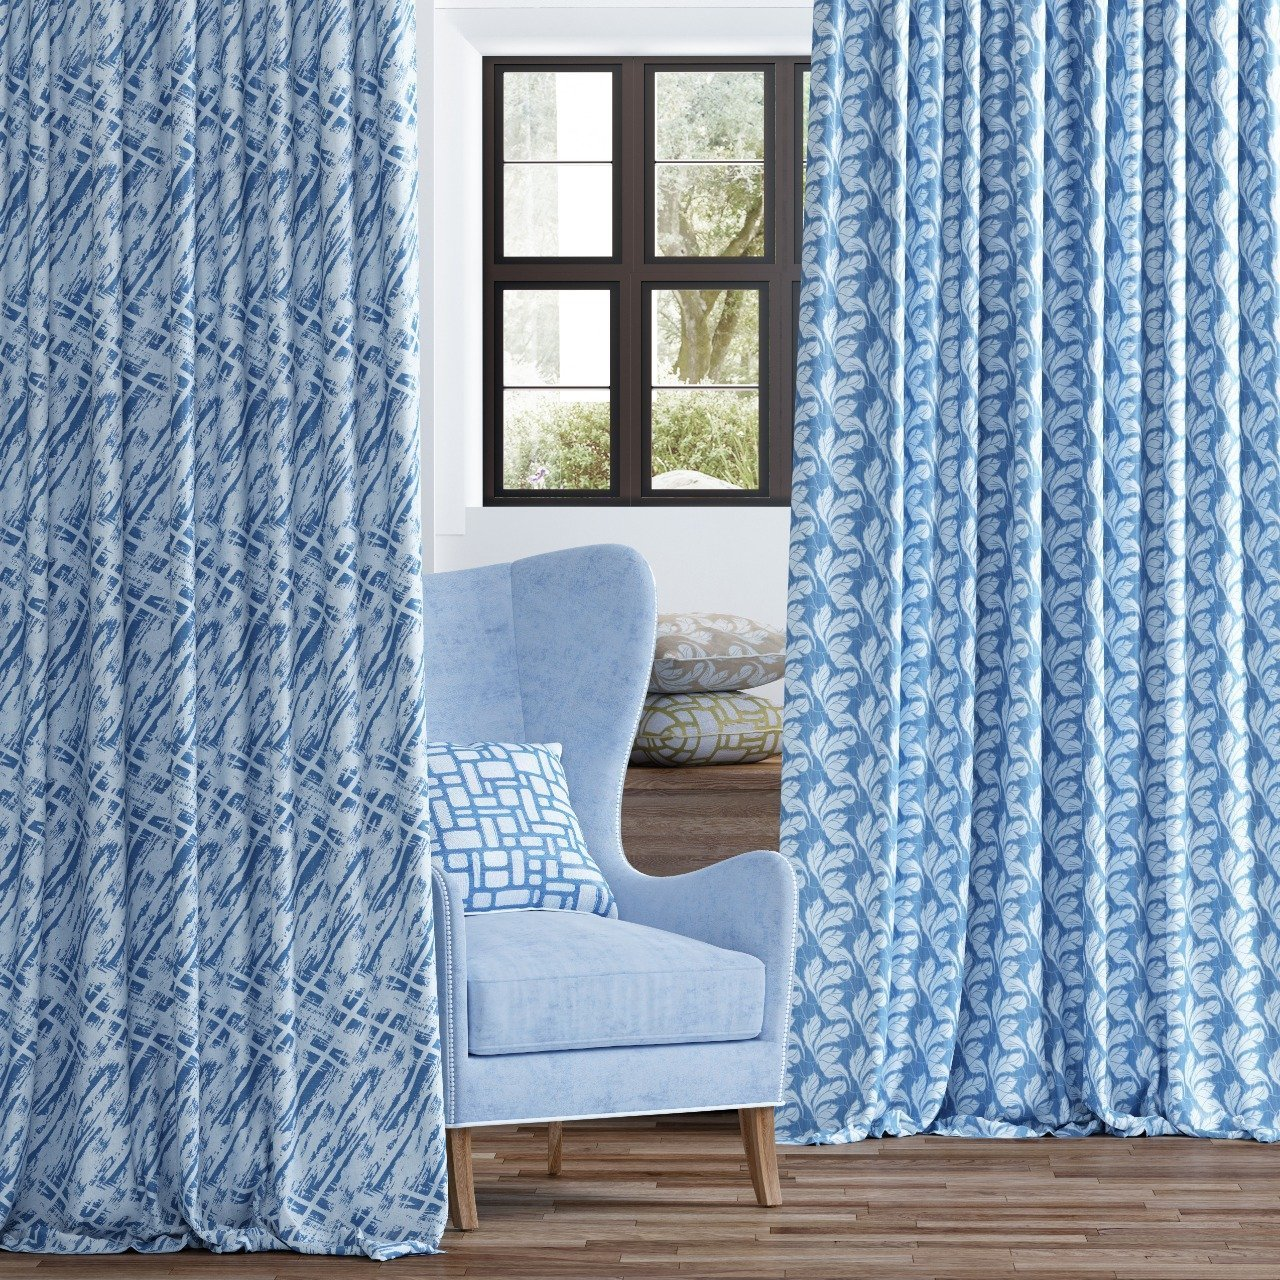 readymade curtains for window